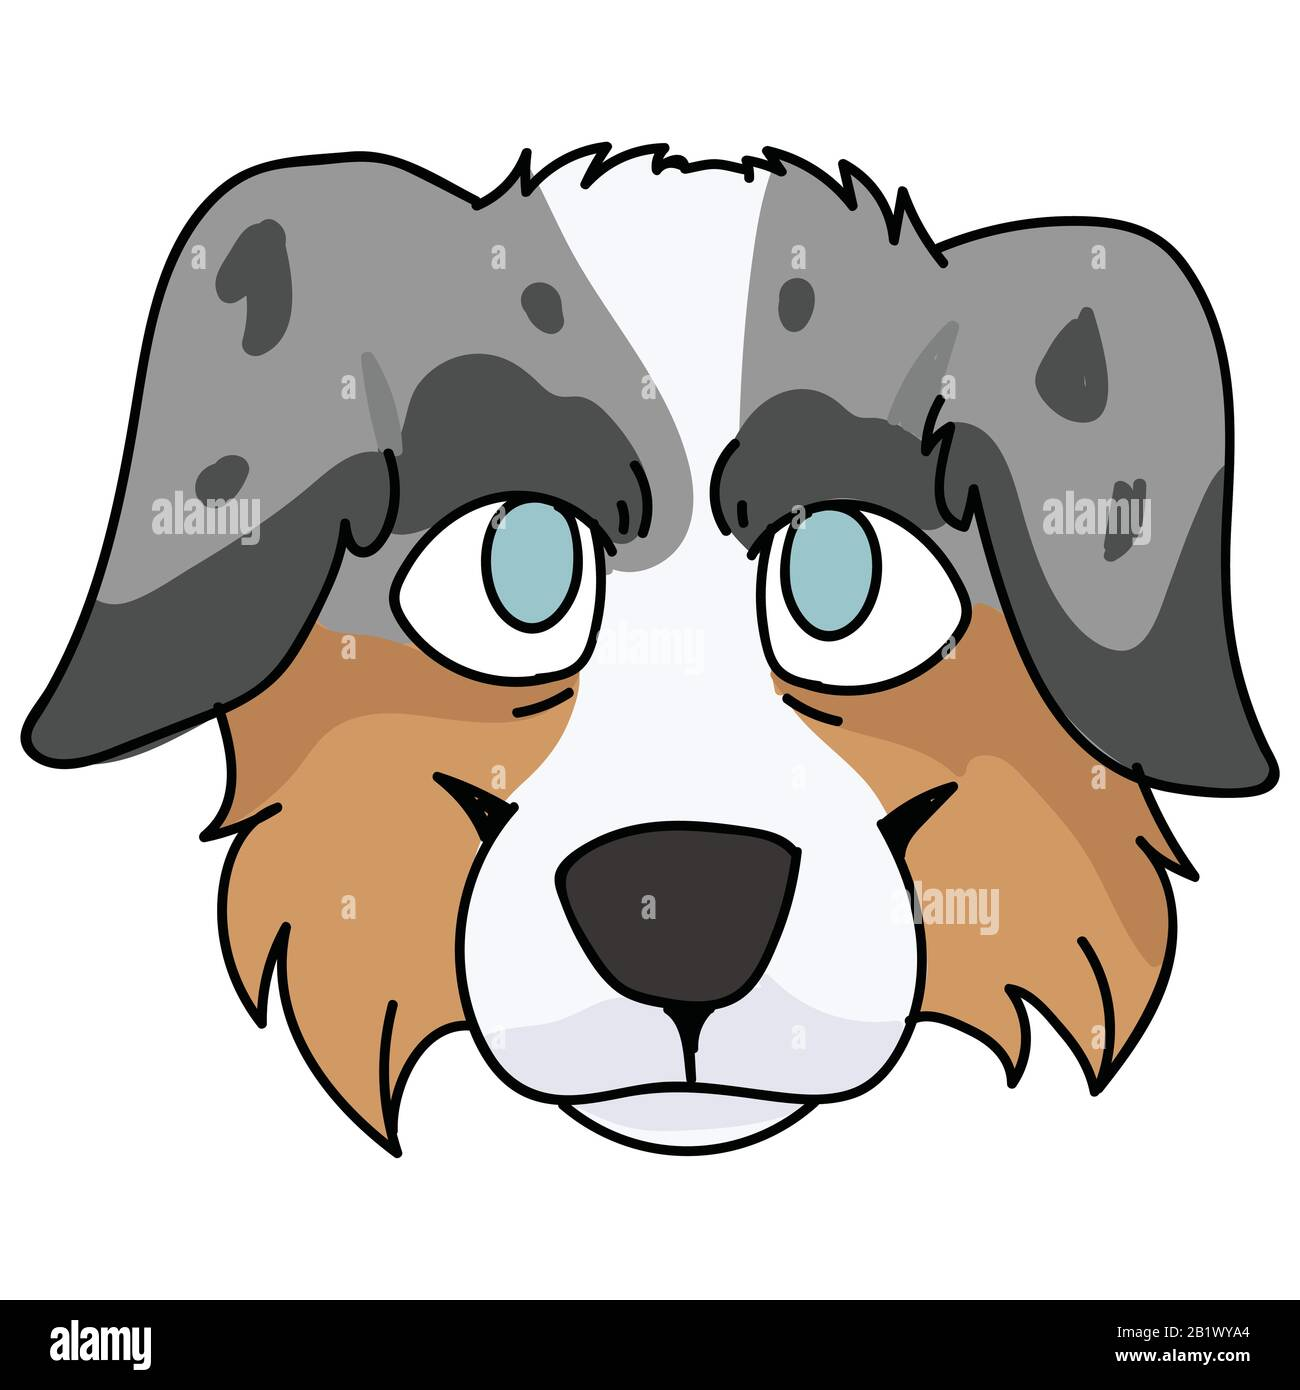 Cute Cartoon Australian Shepherd Dog Face Vector Clipart Pedigree Kennel Doggie Breed For Dog Lovers Purebred Domestic Puppy For Pet Parlor Stock Vector Image Art Alamy